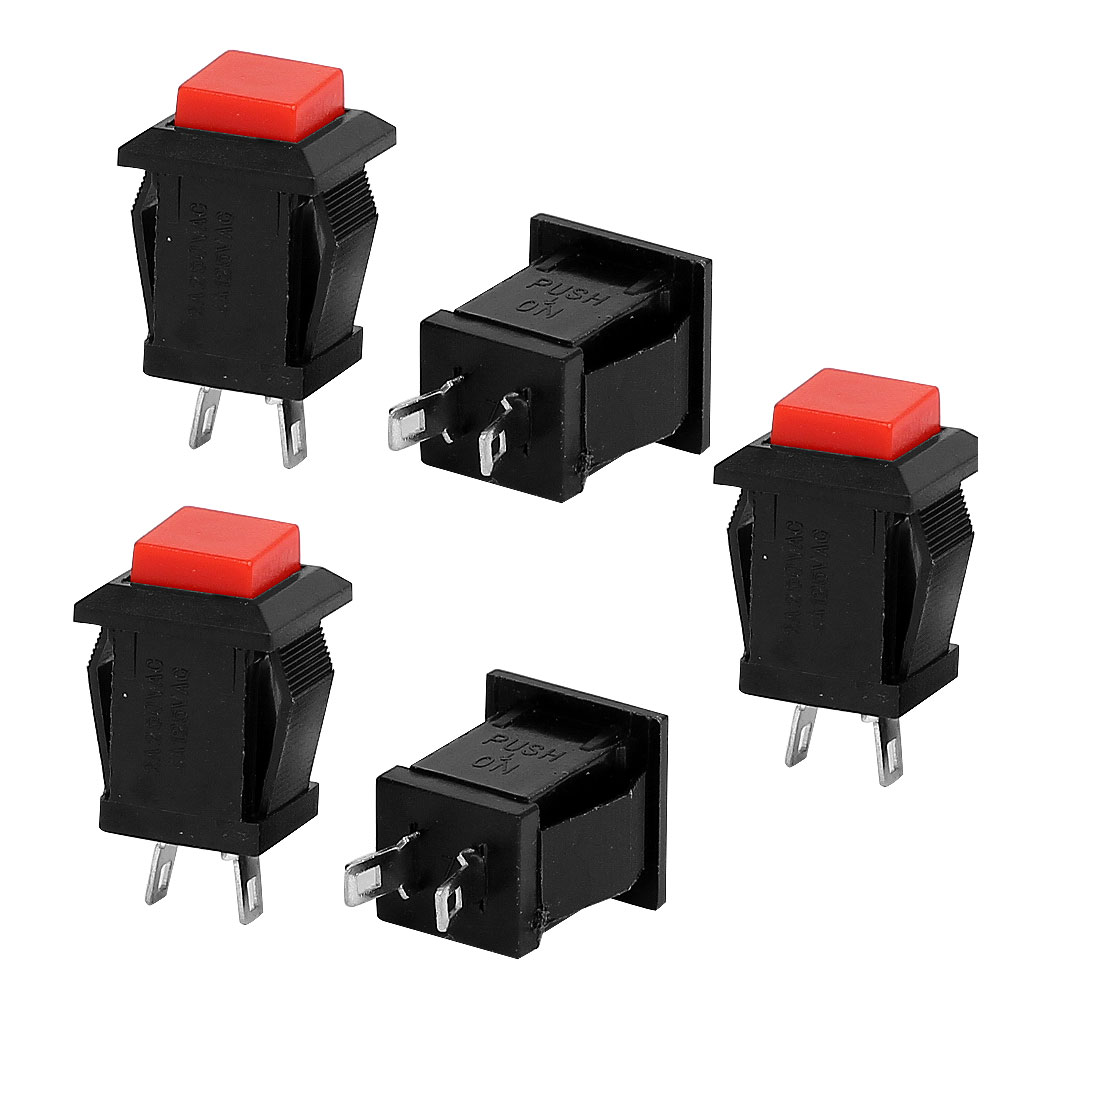 5 Pcs SPST Momentary Red Square Push Button Switch AC 125V/250V 4A/2A